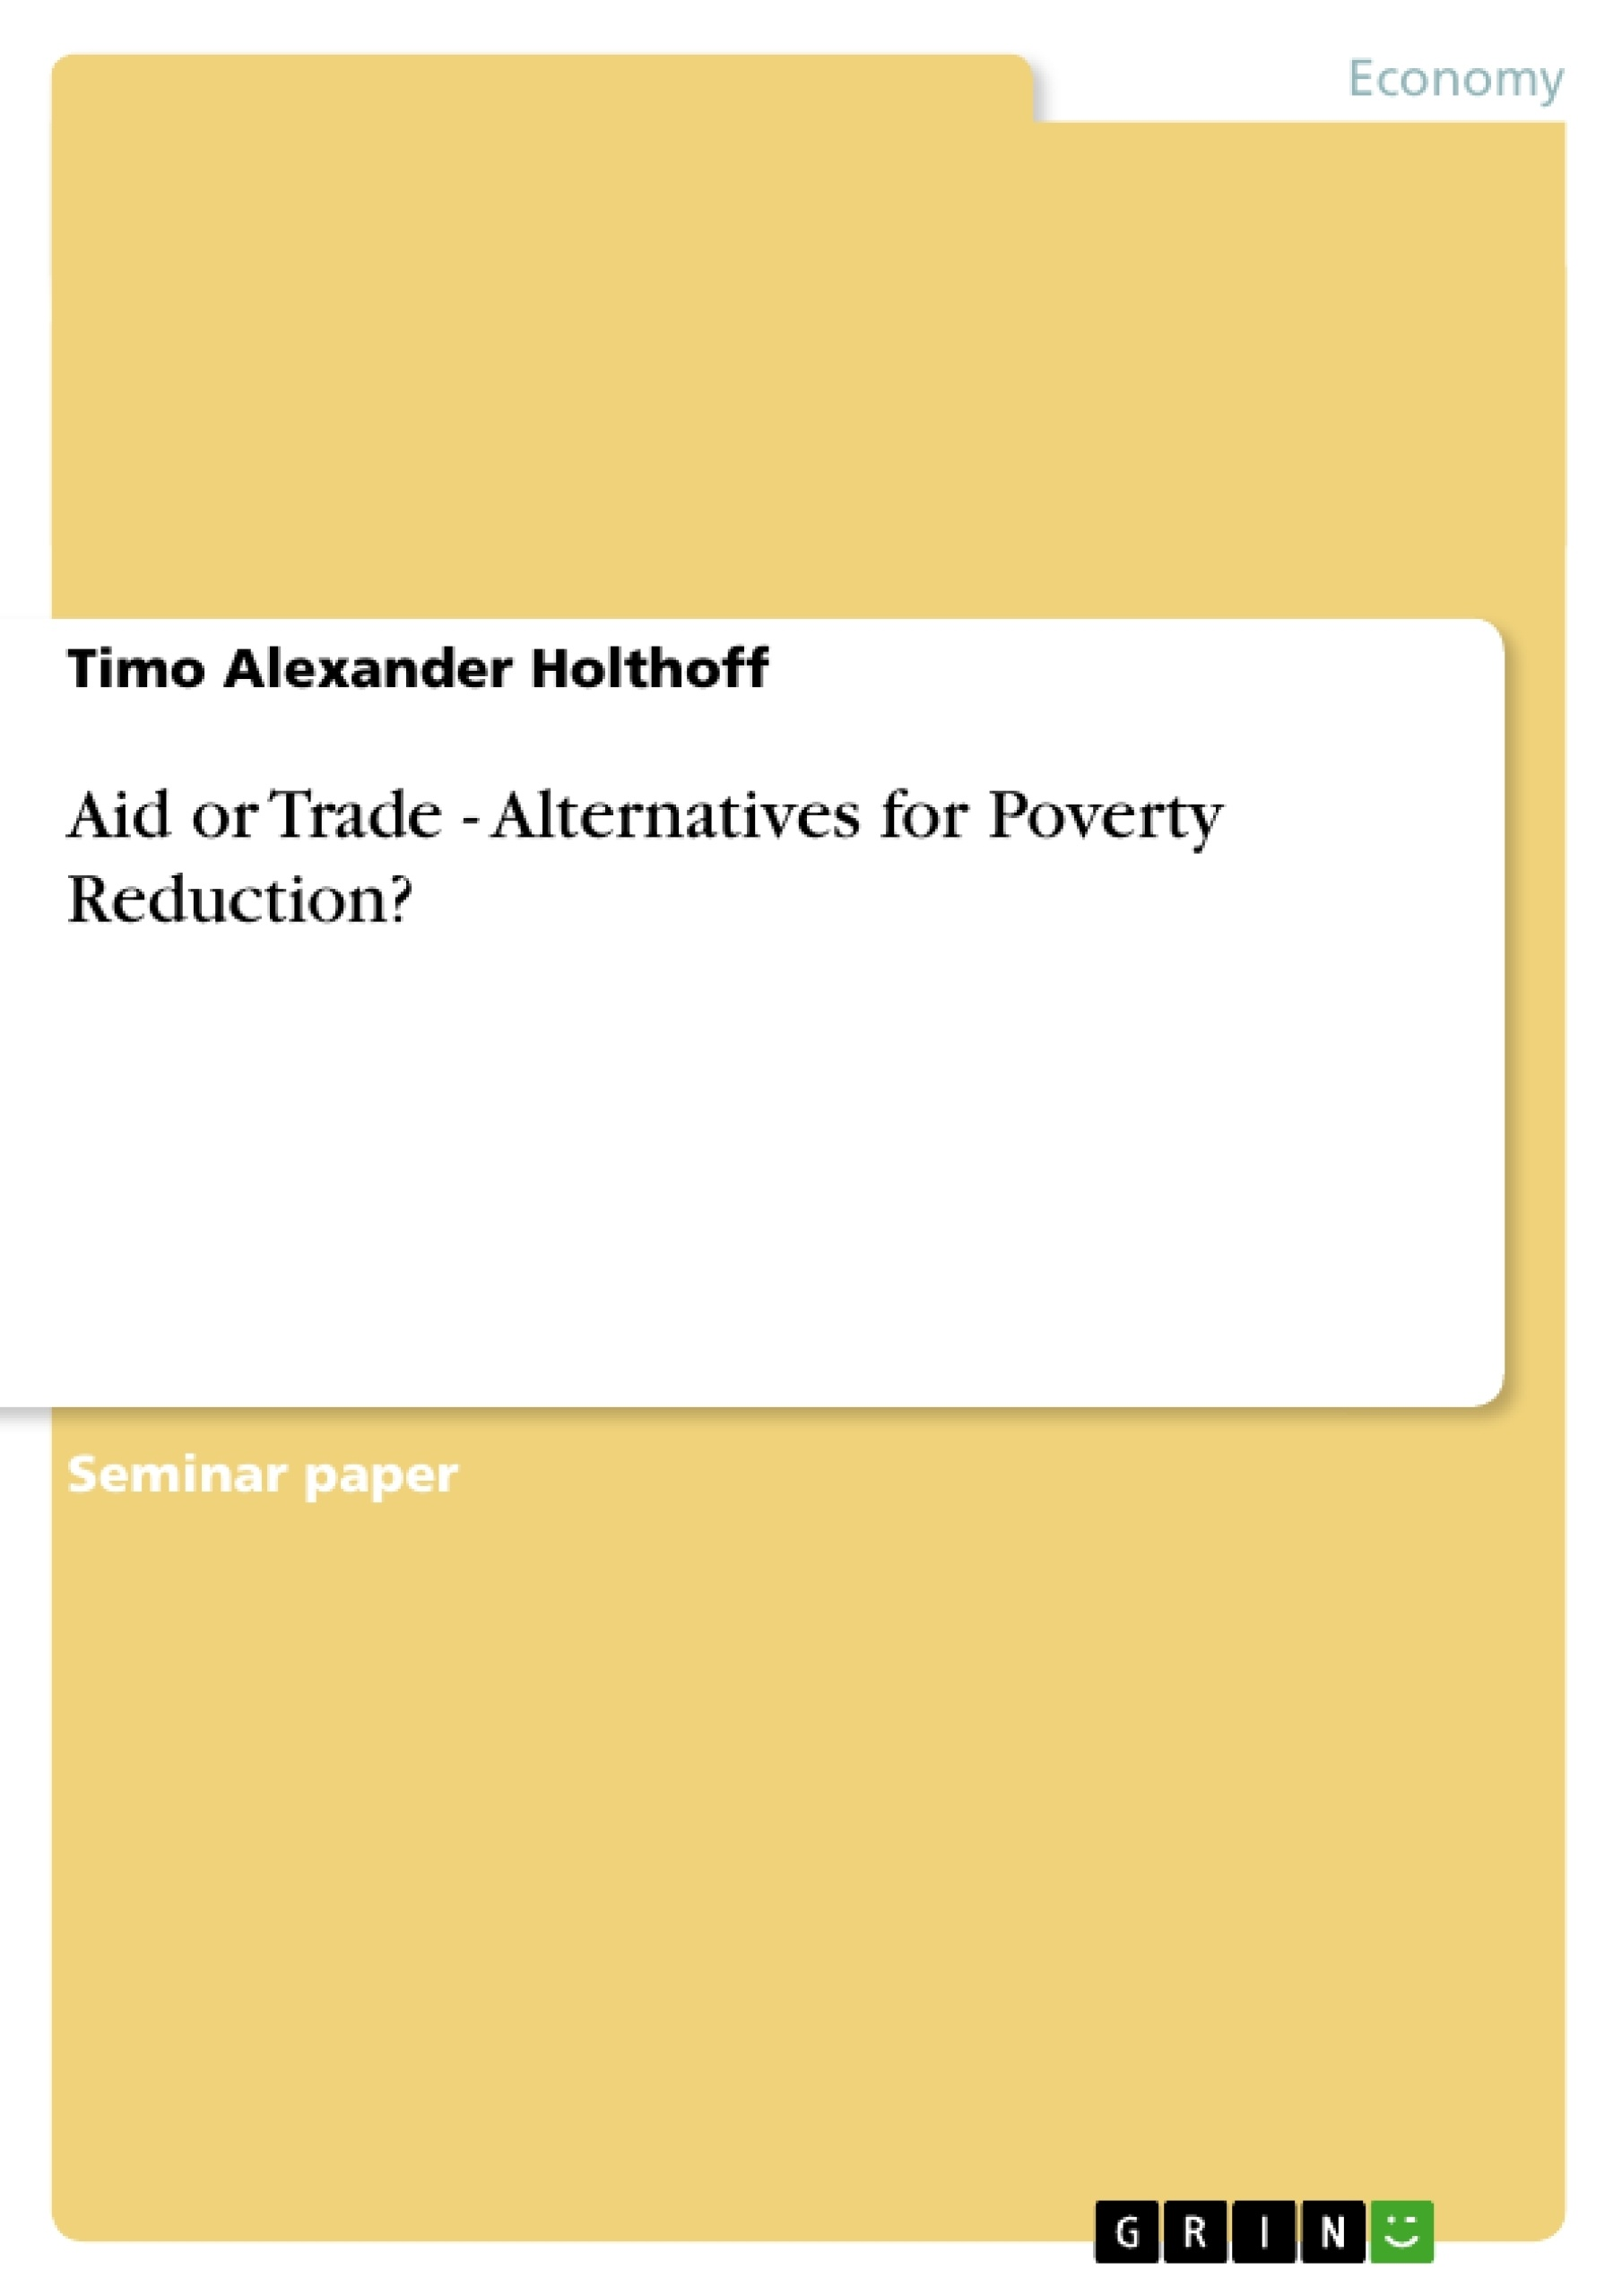 Title: Aid or Trade - Alternatives for Poverty Reduction?